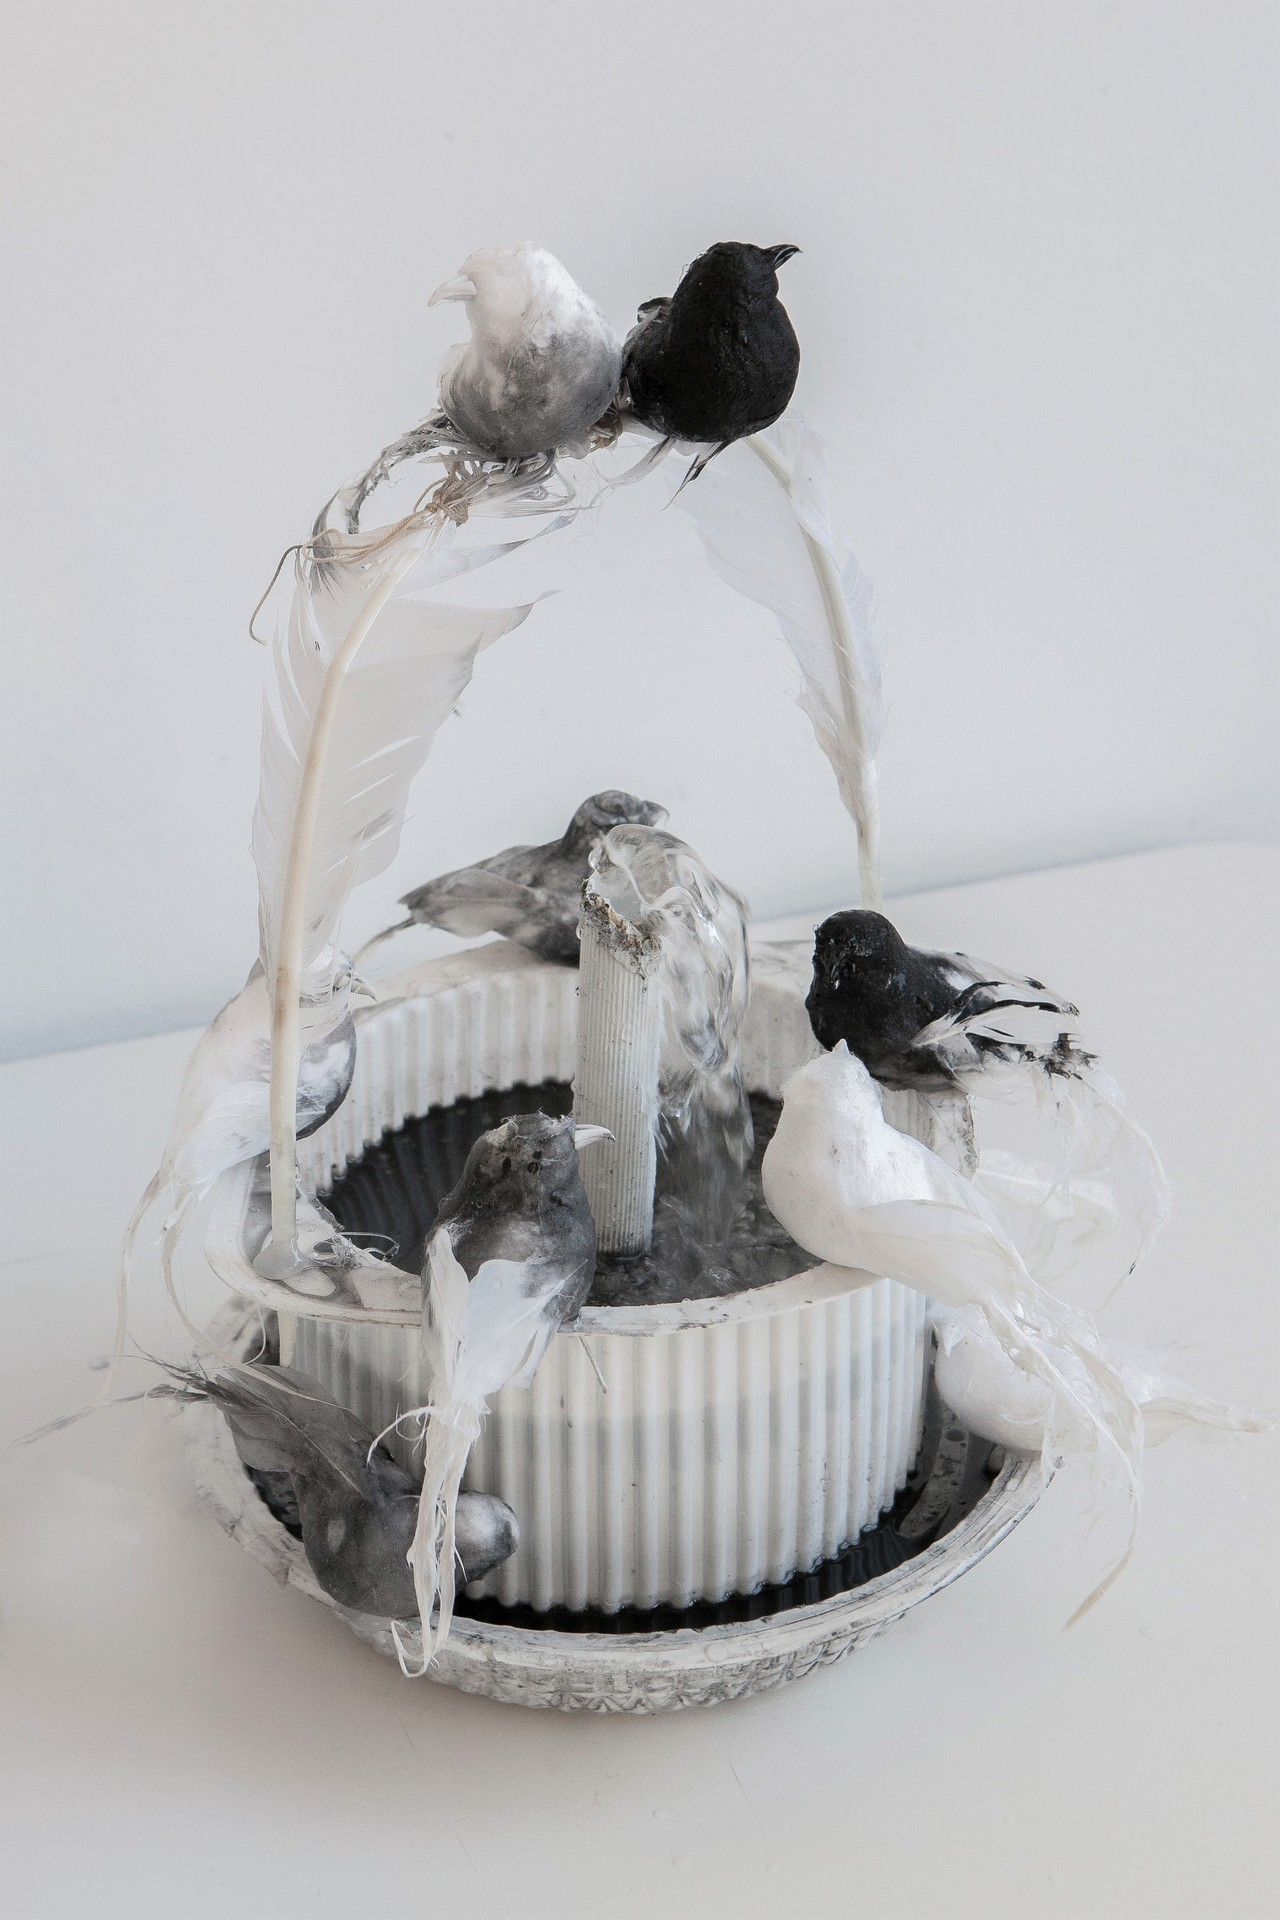 12 - Catástrofe II,29 x 23 x 23 cm plastic, feathers, water, oil, other, 2019.1.jpg